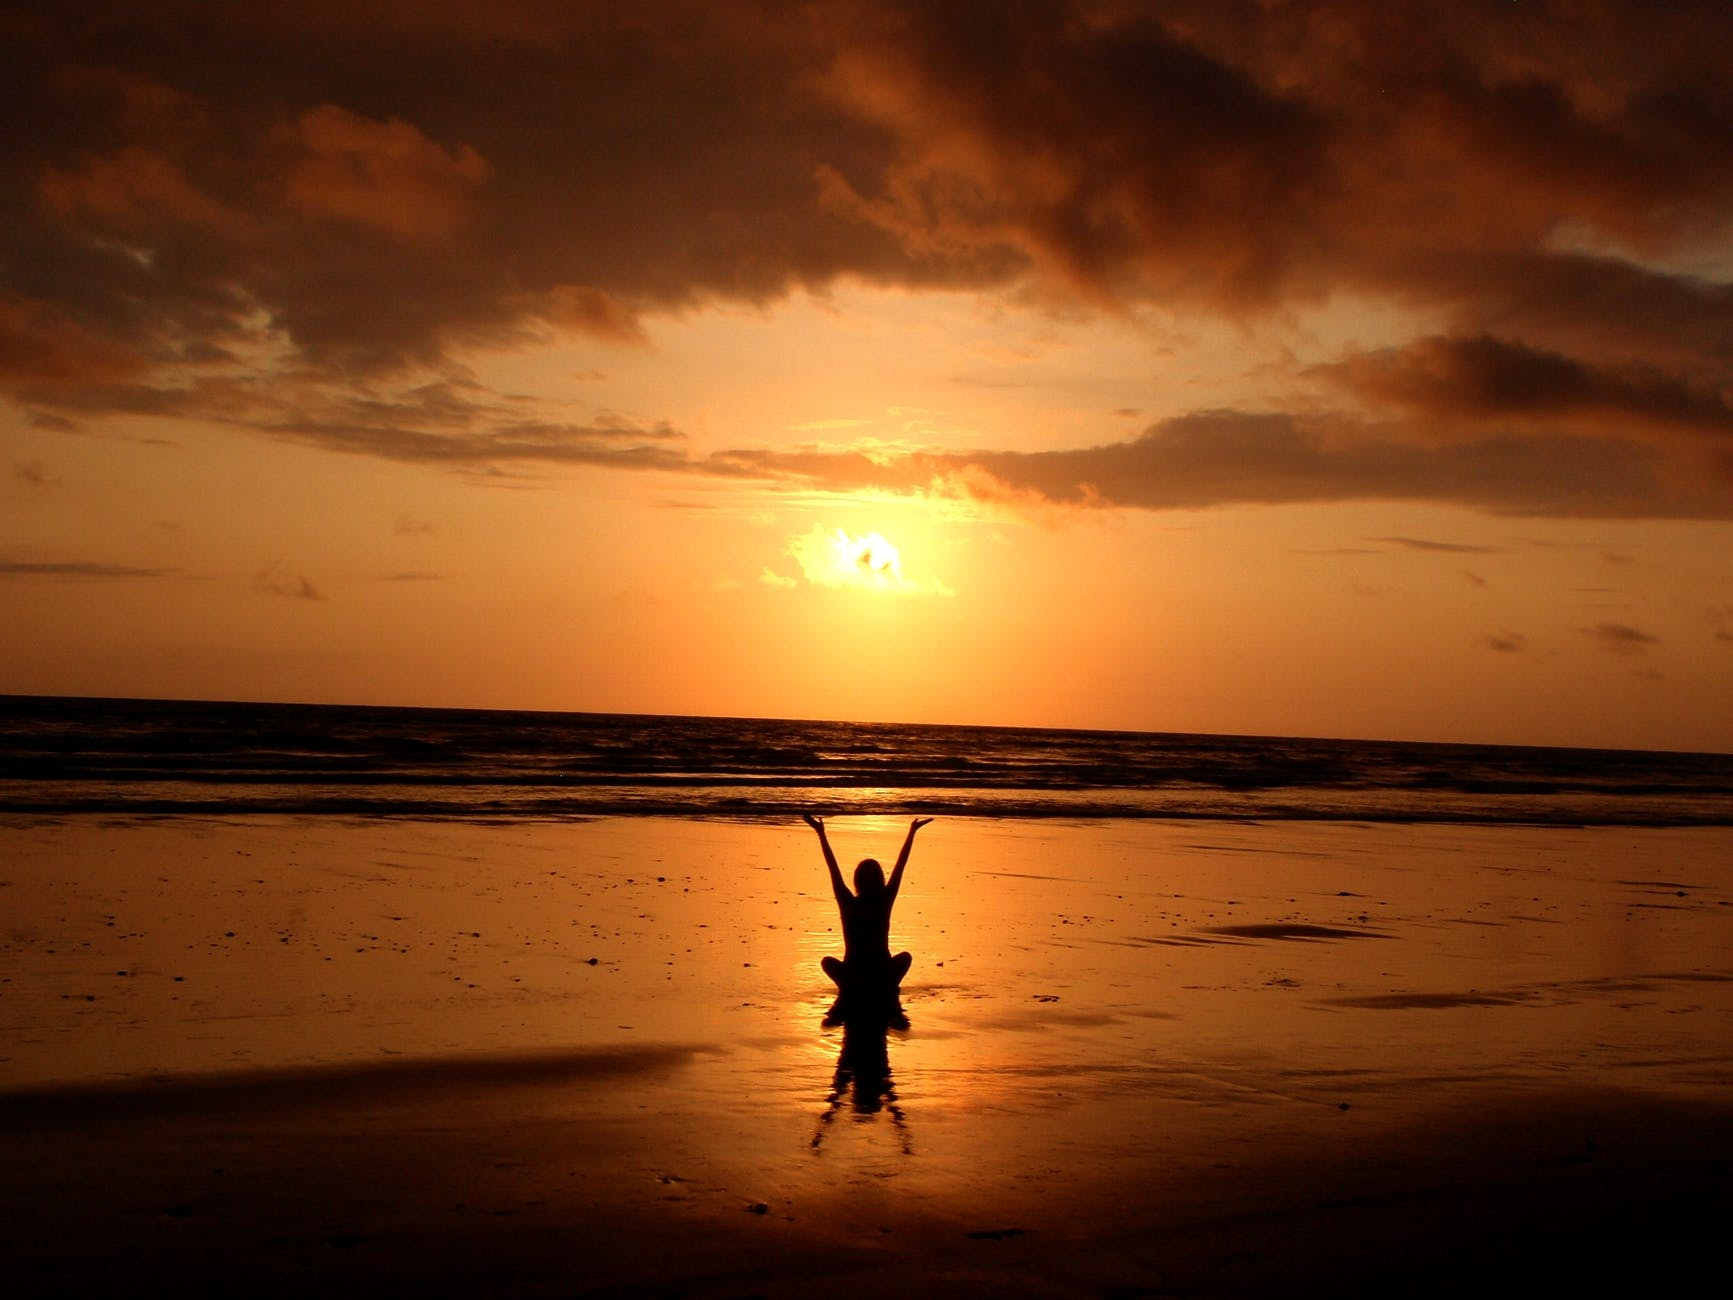 photo of woman with her hands in the air, as she meditates during sunset on a beach.